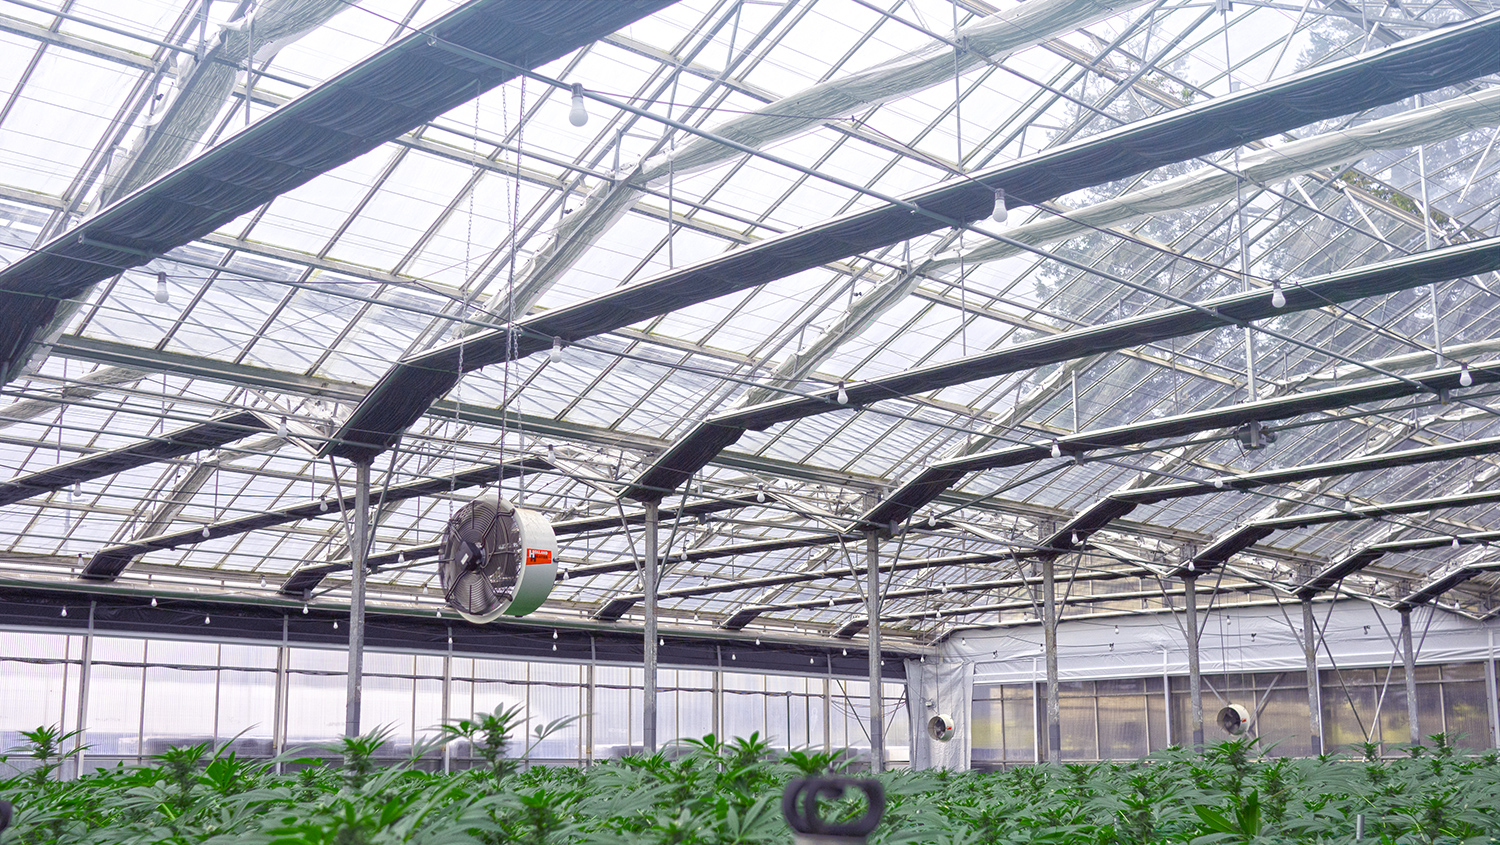 Vents and Fans and Marijuana Grow